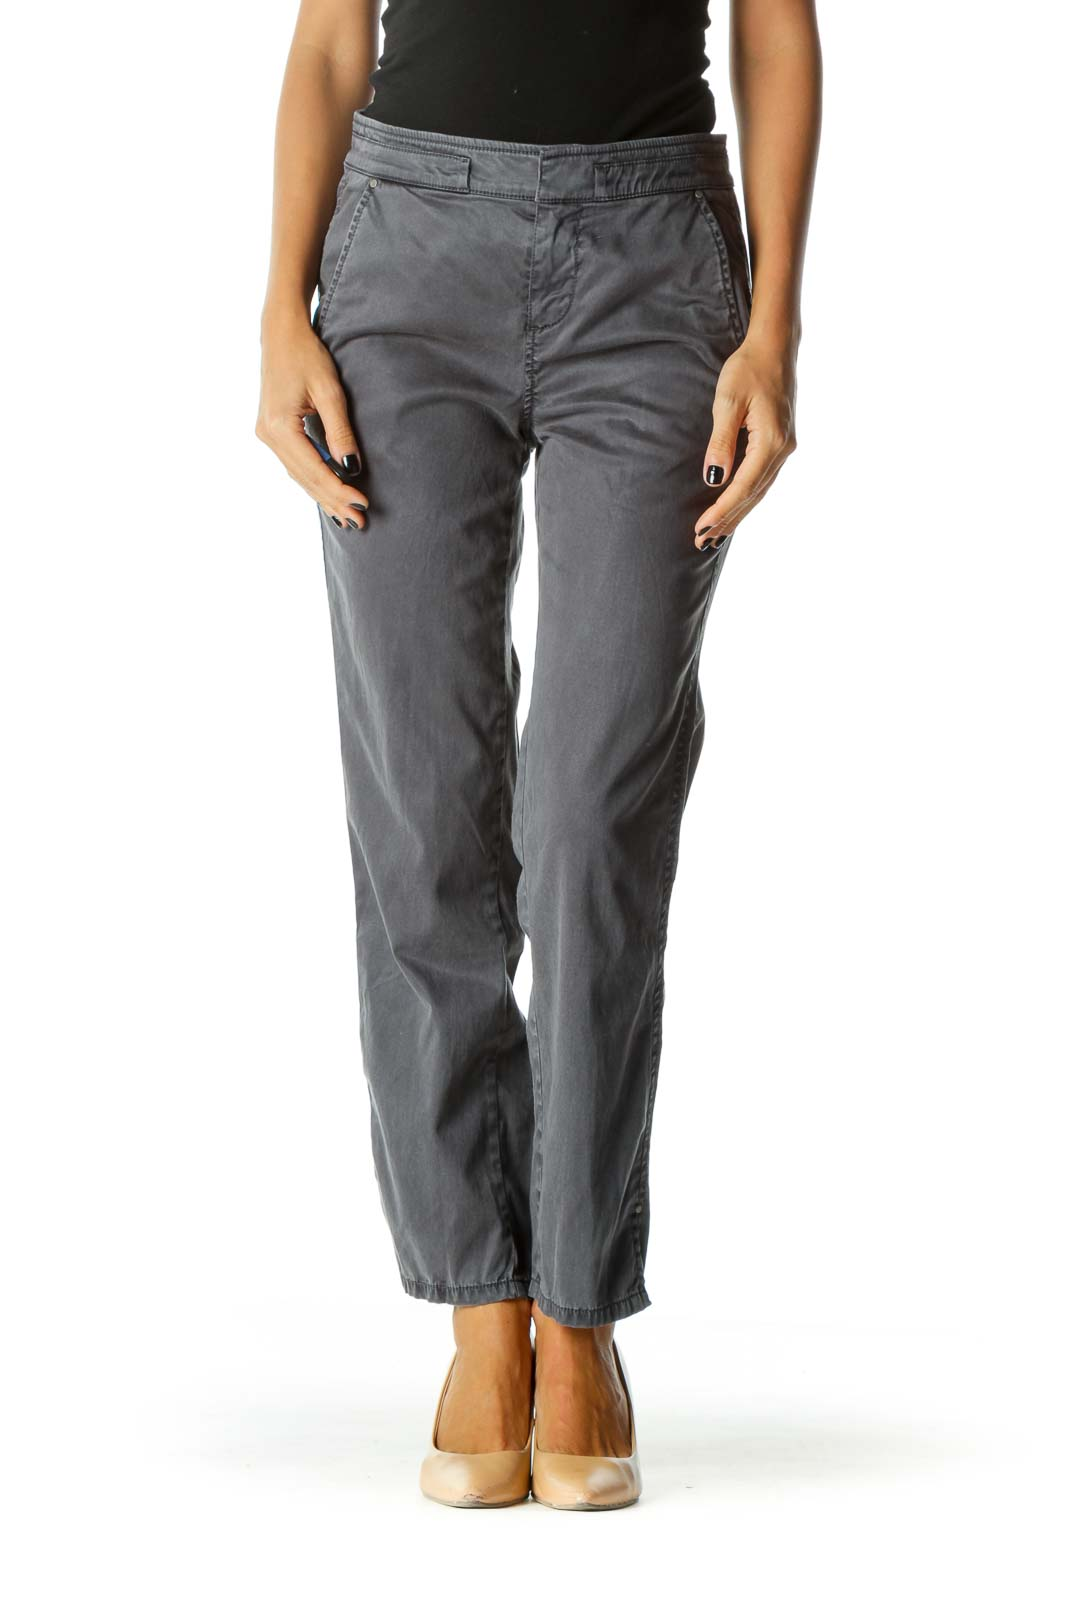 Gray Faded Wash Pocket3 Pants